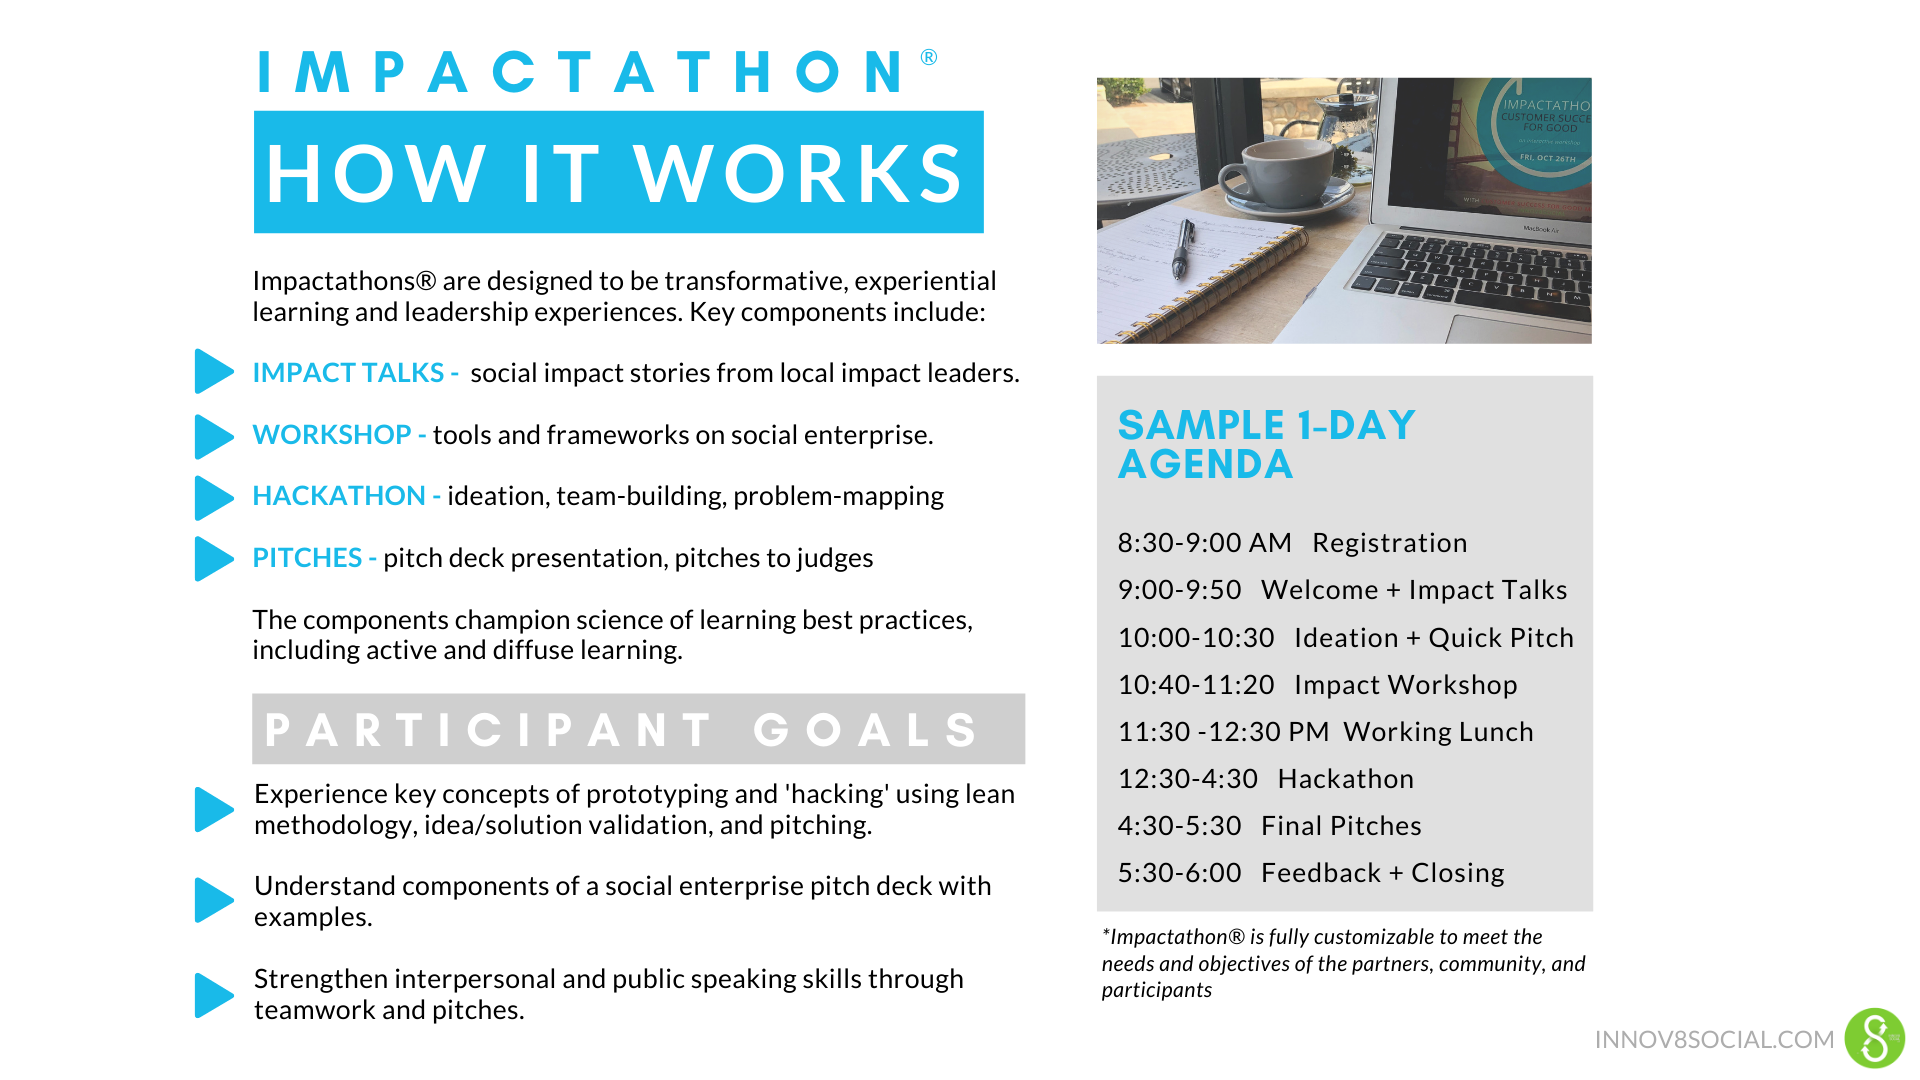 How Impactathon Works. Impactathons® are designed to be transformative, experiential learning and leadership experiences. Key components include: IMPACT TALKS - social impact stories from local impact leaders. WORKSHOP - tools and frameworks on social enterprise. HACKATHON - ideation, team-building, problem-mapping PITCHES - pitch deck presentation, pitches to judges The components champion science of learning best practices, including active and diffuse learning. Participant Goals: Experience key concepts of prototyping and 'hacking' using lean methodology, idea/solution validation, and pitching. Understand components of a social enterprise pitch deck with examples. Strengthen interpersonal and public speaking skills through teamwork and pitches.